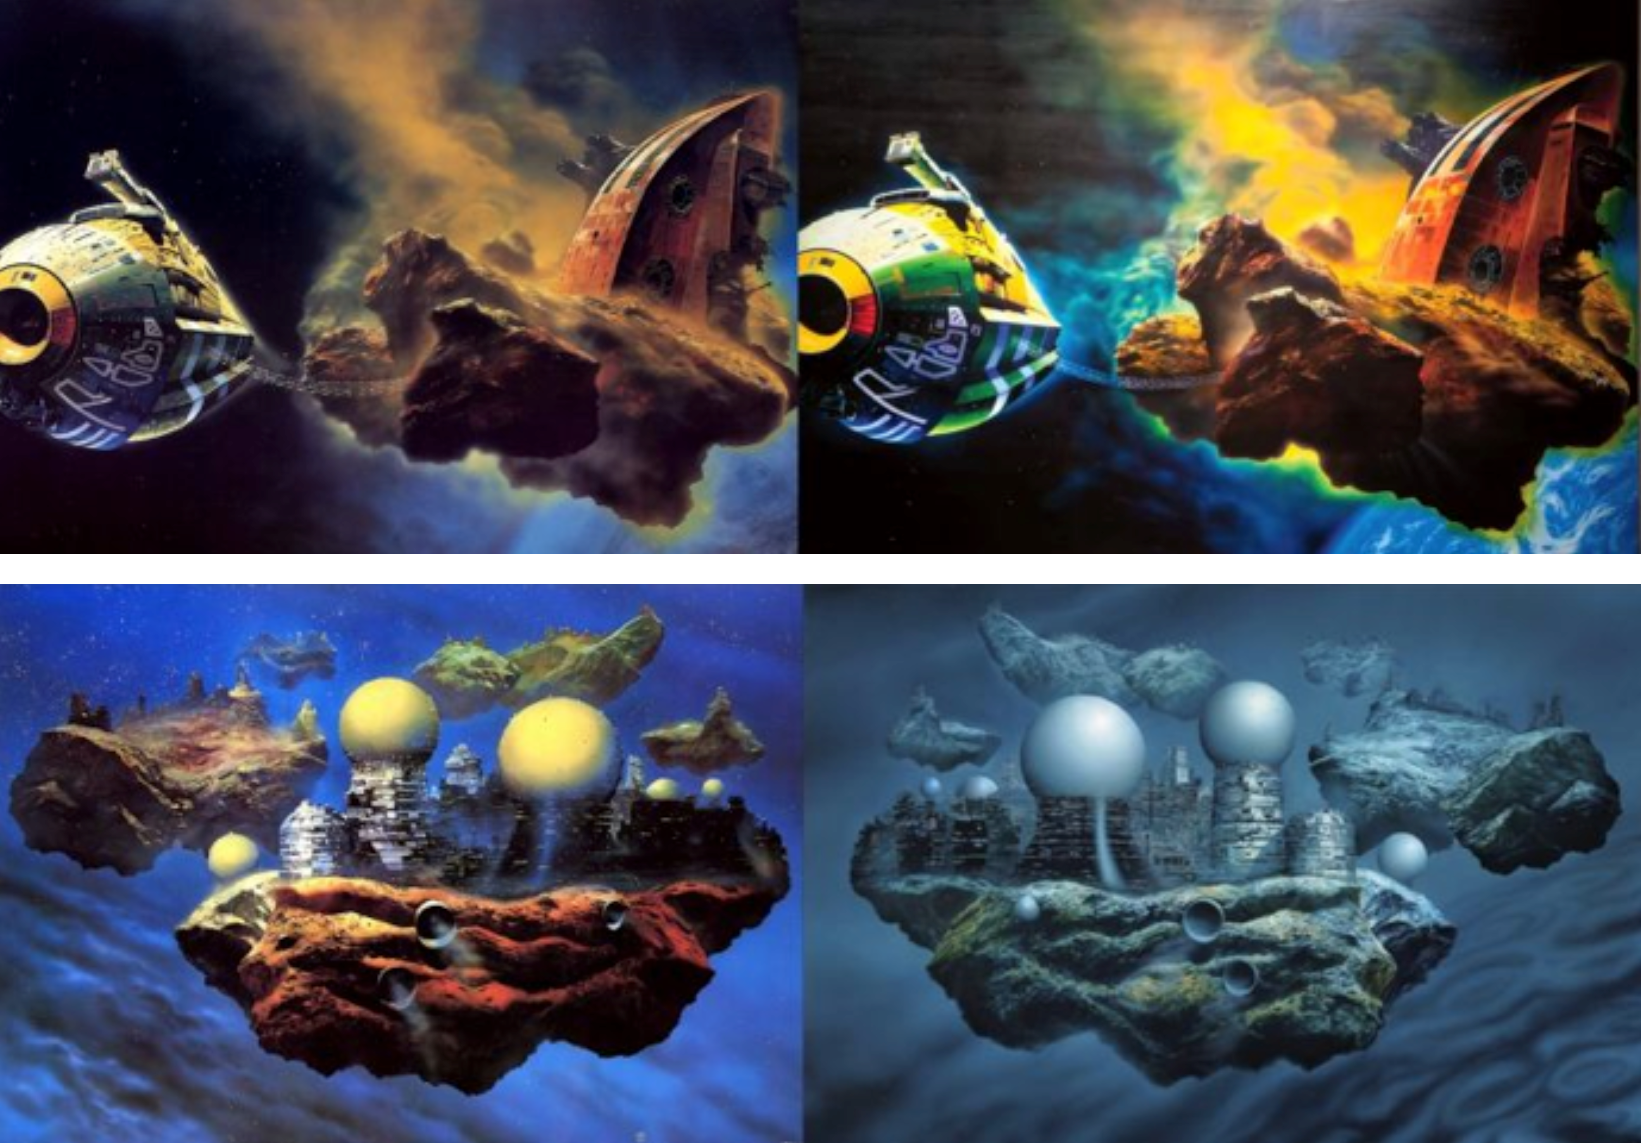 Chris Foss' Stars Like Dust and Glenn Brown's Ornamental Despair / Floating Cities and Glenn Brown's Bocklin's Tomb, available at How a Science Fiction Book Cover Became a $5.7 Million Painting, by Charlie Jane Anders,